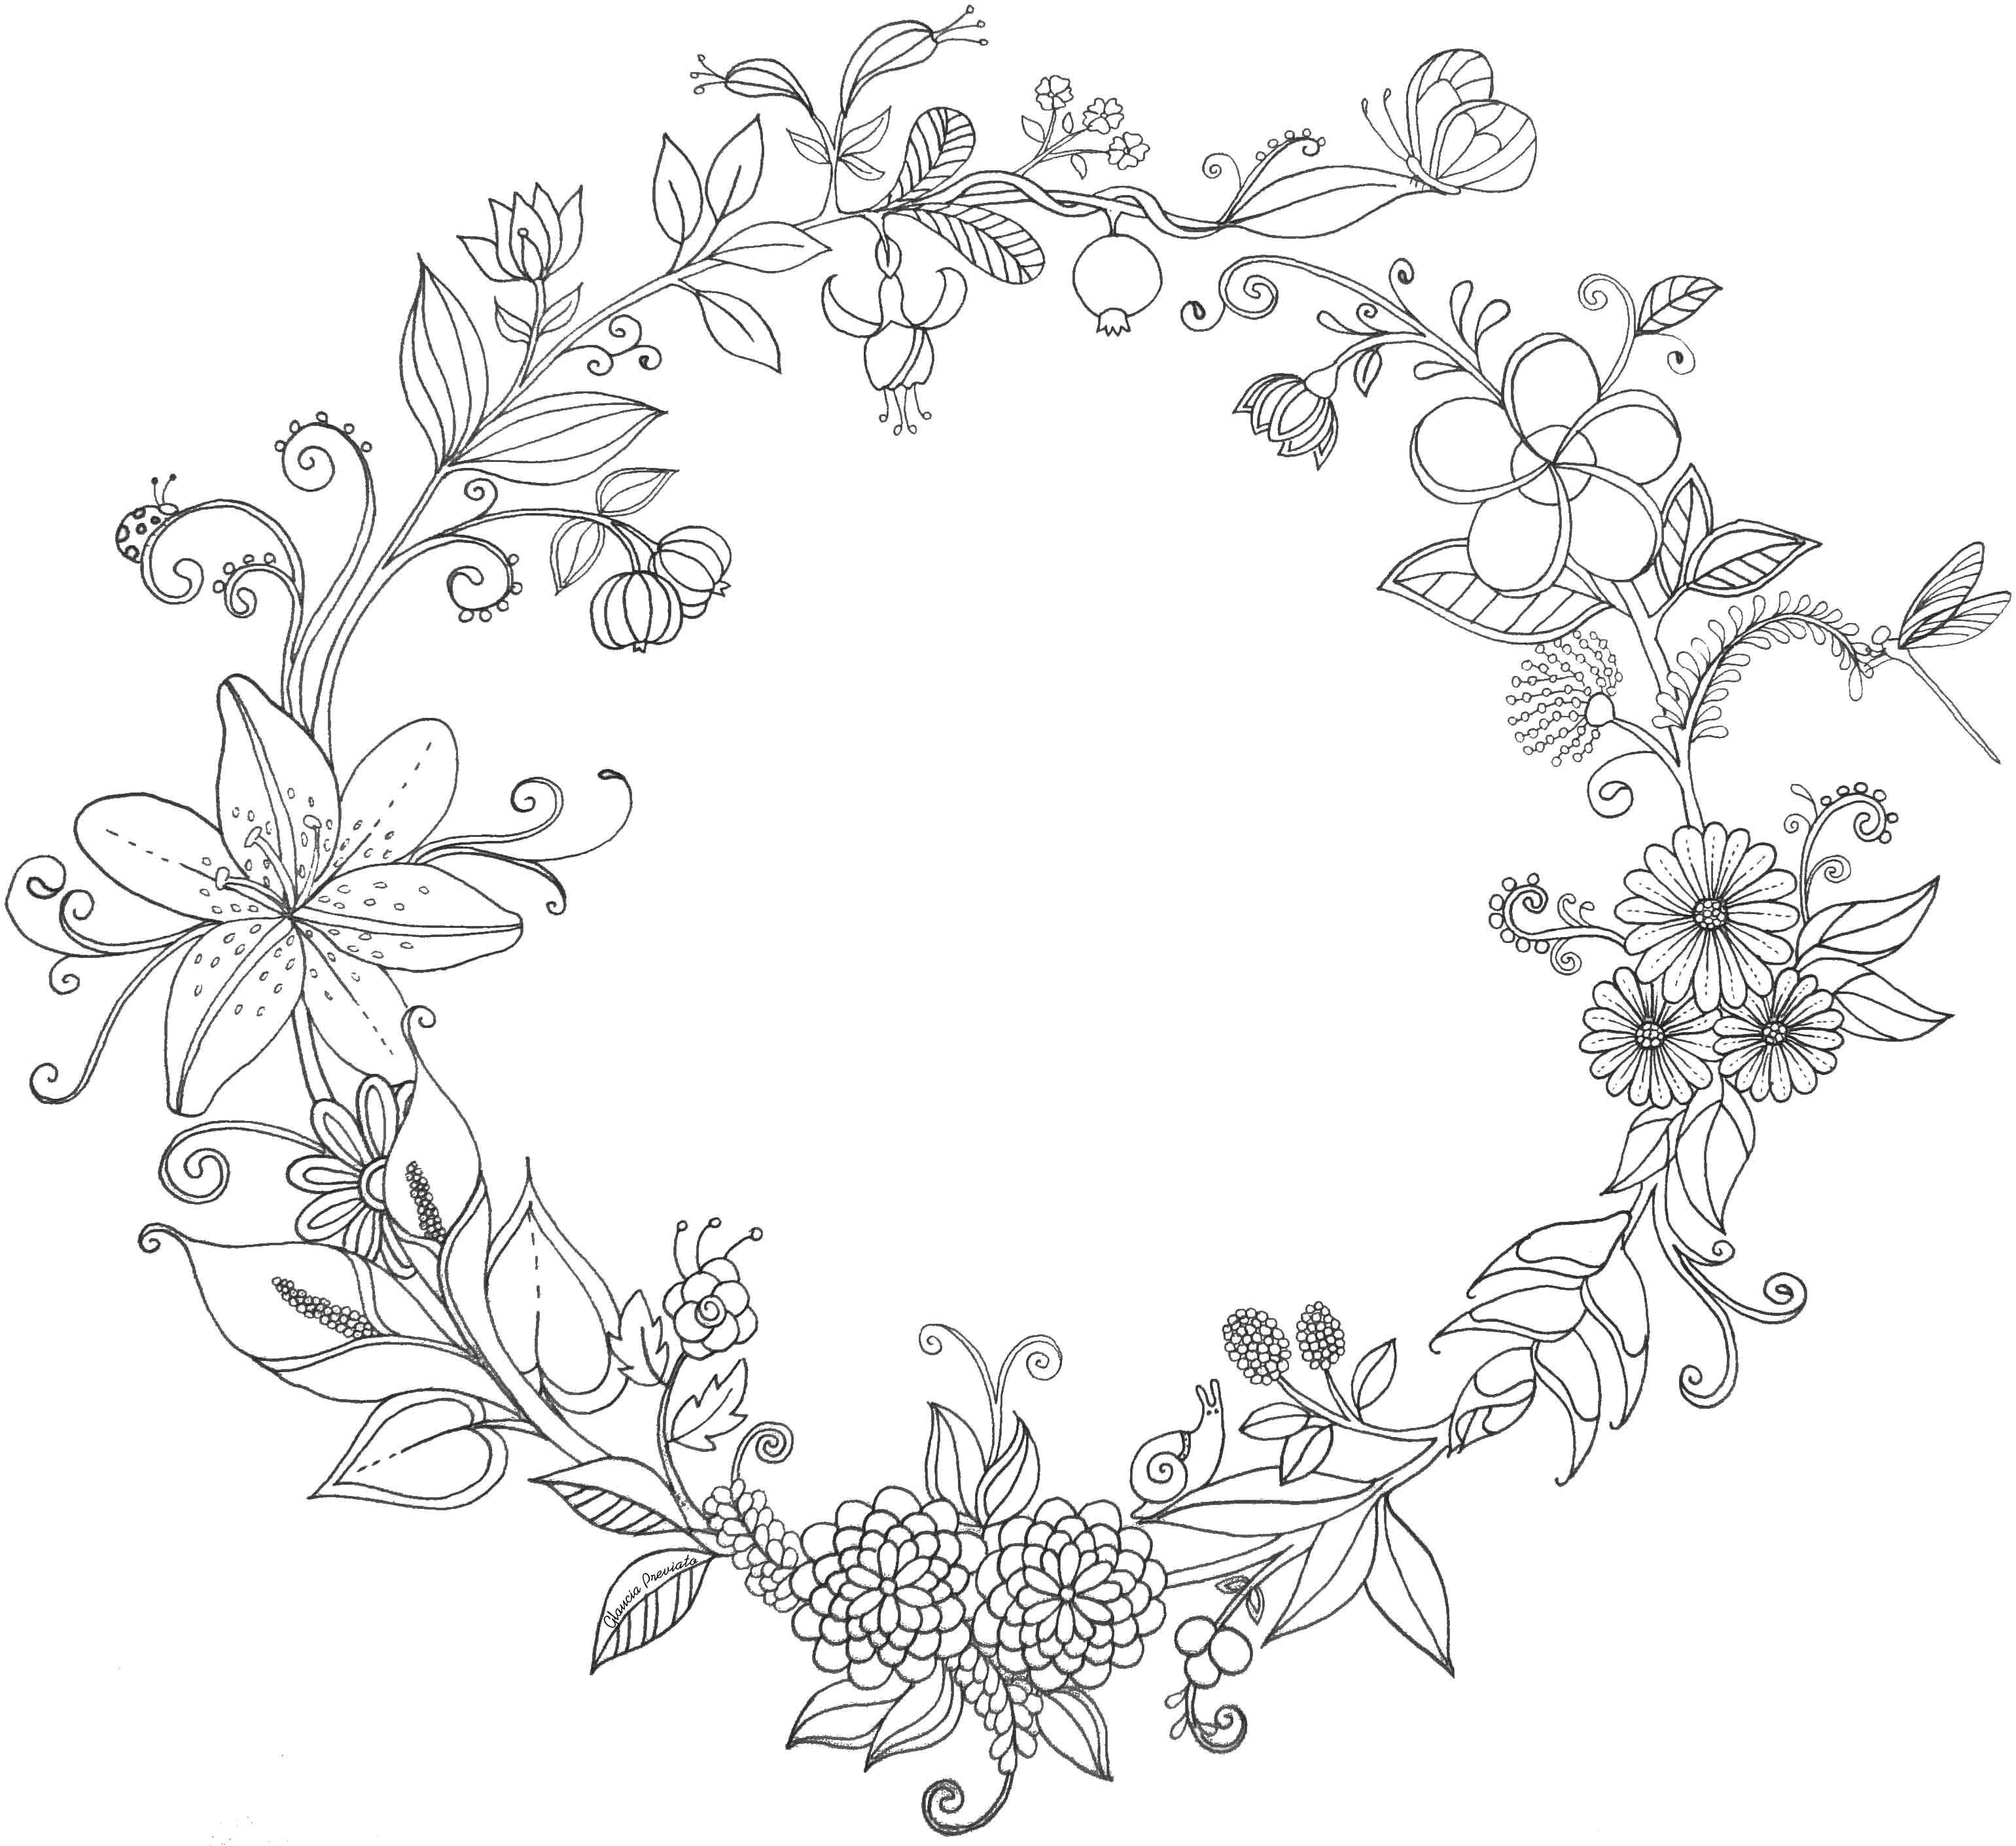 ilustraa a o flores do brasil illustration flowers brazil embroidery patterns hand embroidery embroidery stitches